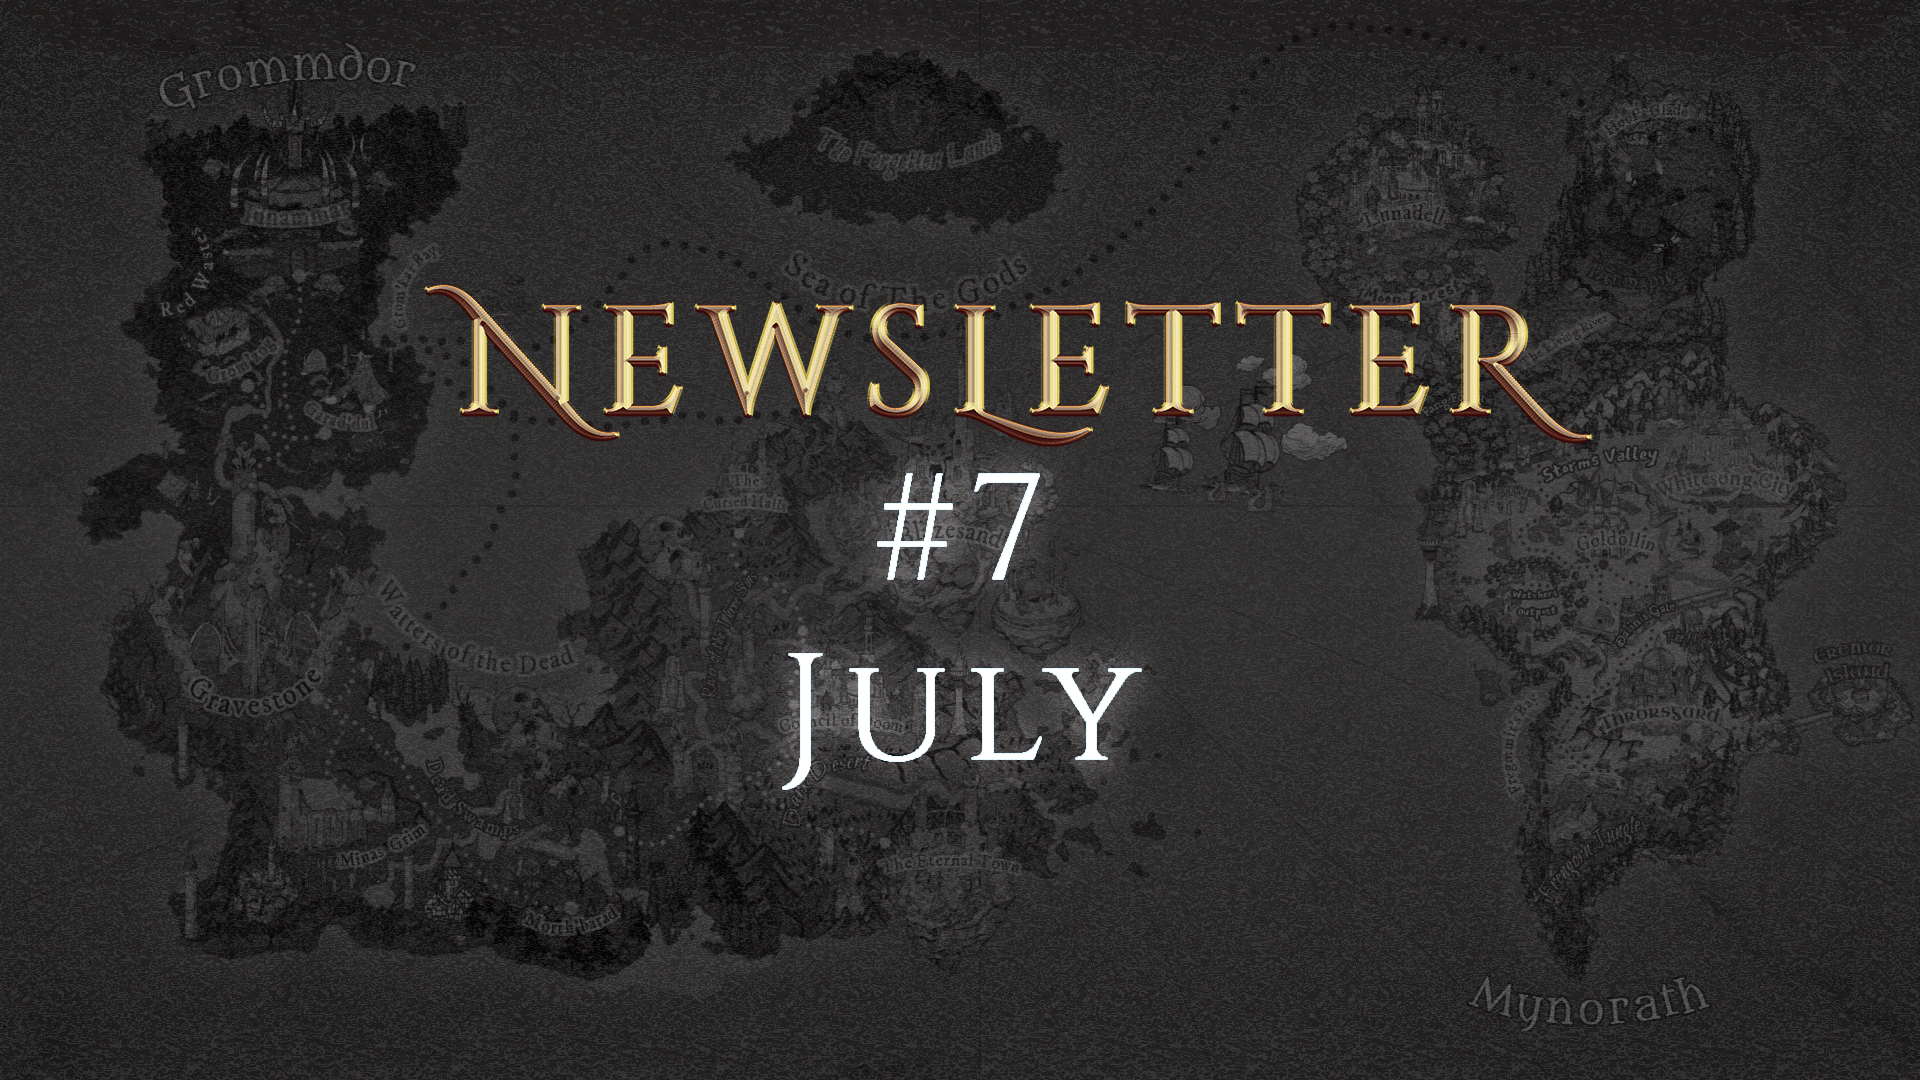 Monthly Newsletter #7 - July